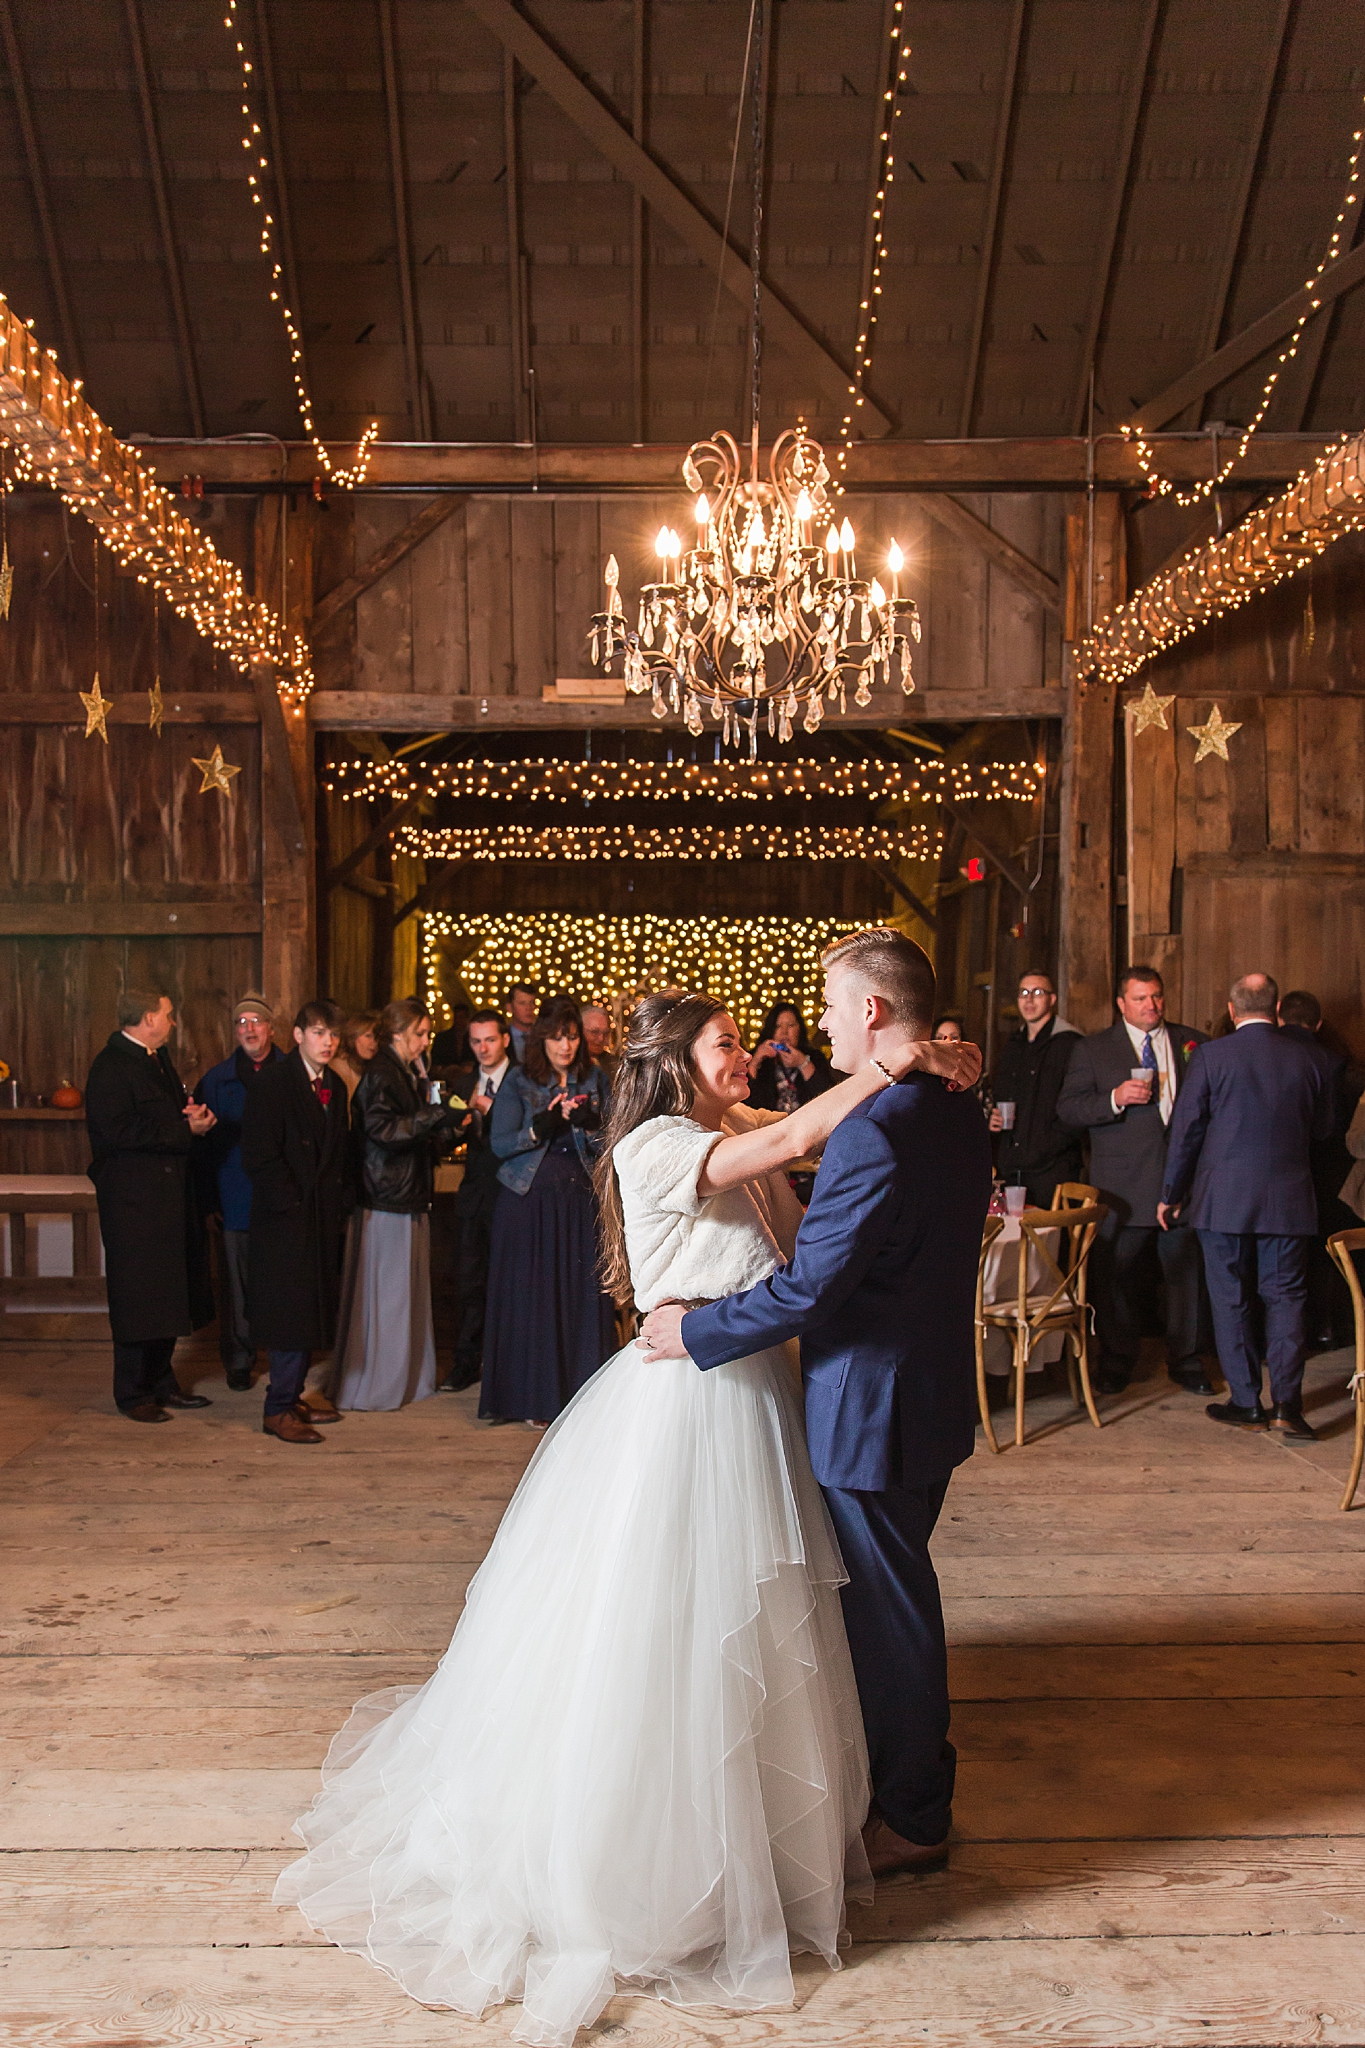 rustic-whimsical-wedding-photos-the-vale-royal-barn-in-fenton-michigan-by-courtney-carolyn-photography_0093.jpg